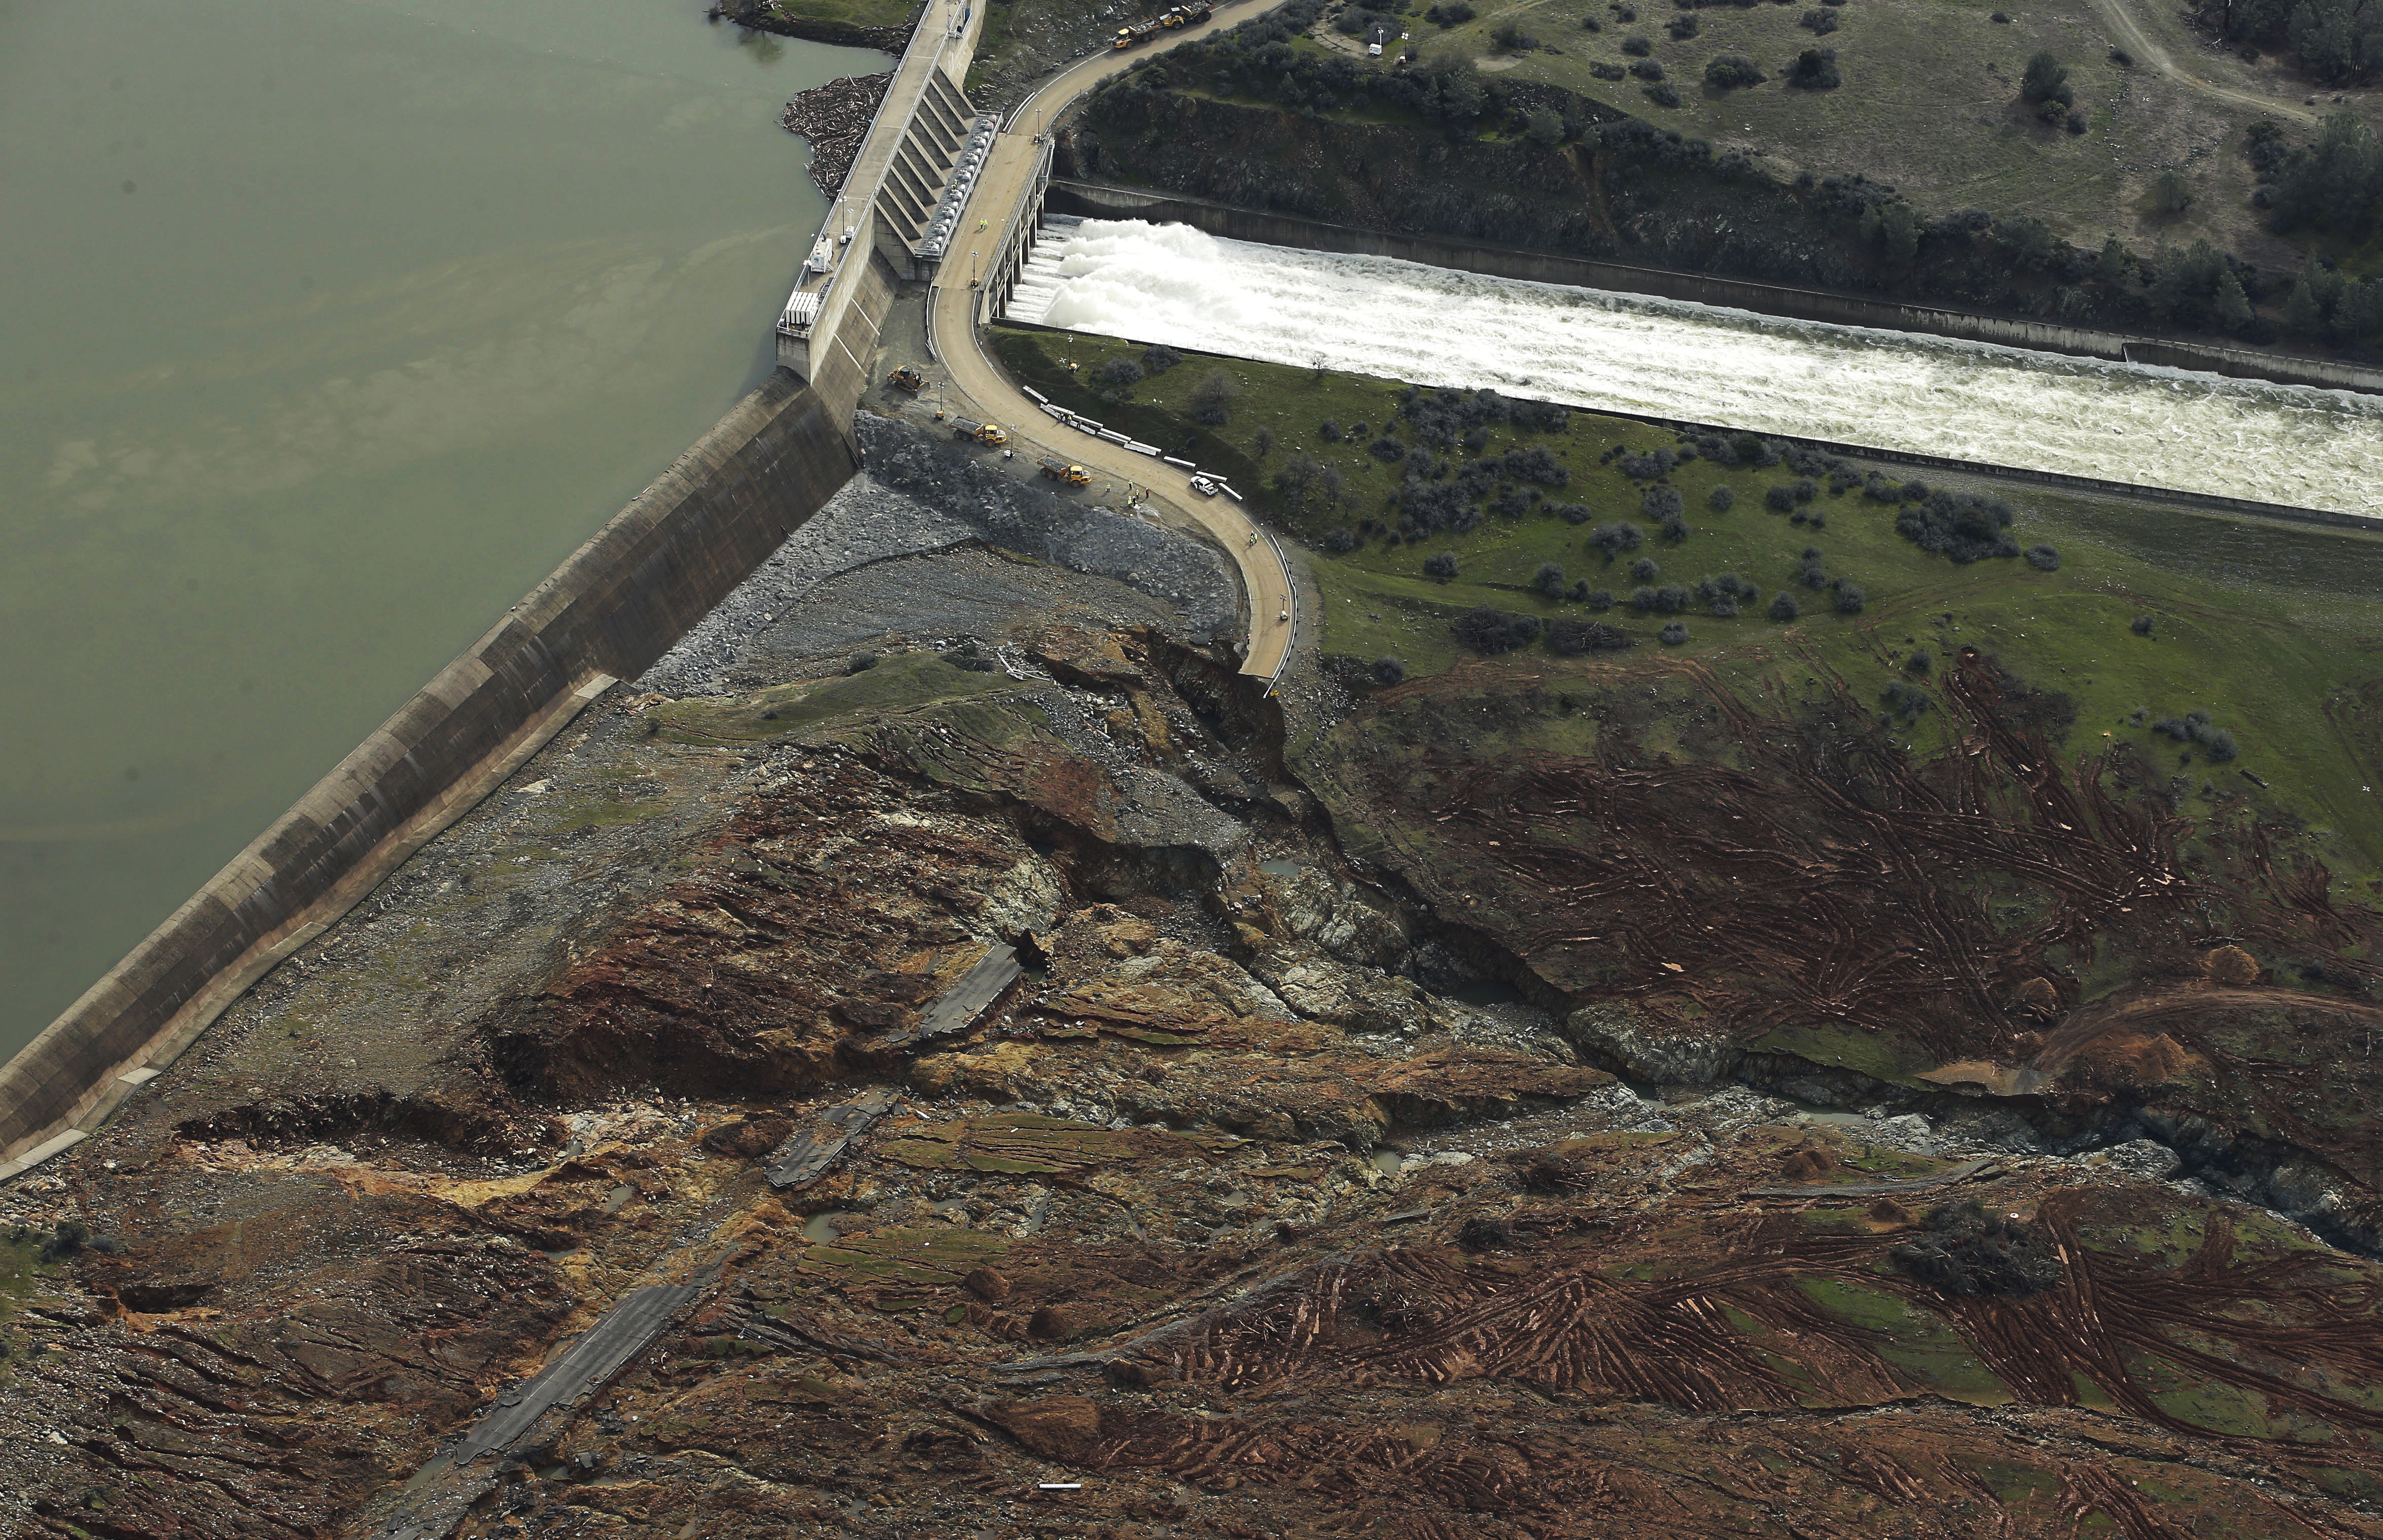 Erosion caused when overflow water cascaded down the emergency spillway is seen, bottom, as water continues to flow down the main spillway, top, of the Oroville Dam in Oroville, Calif., on Feb. 13, 2017. (AP Photo/Rich Pedroncelli)